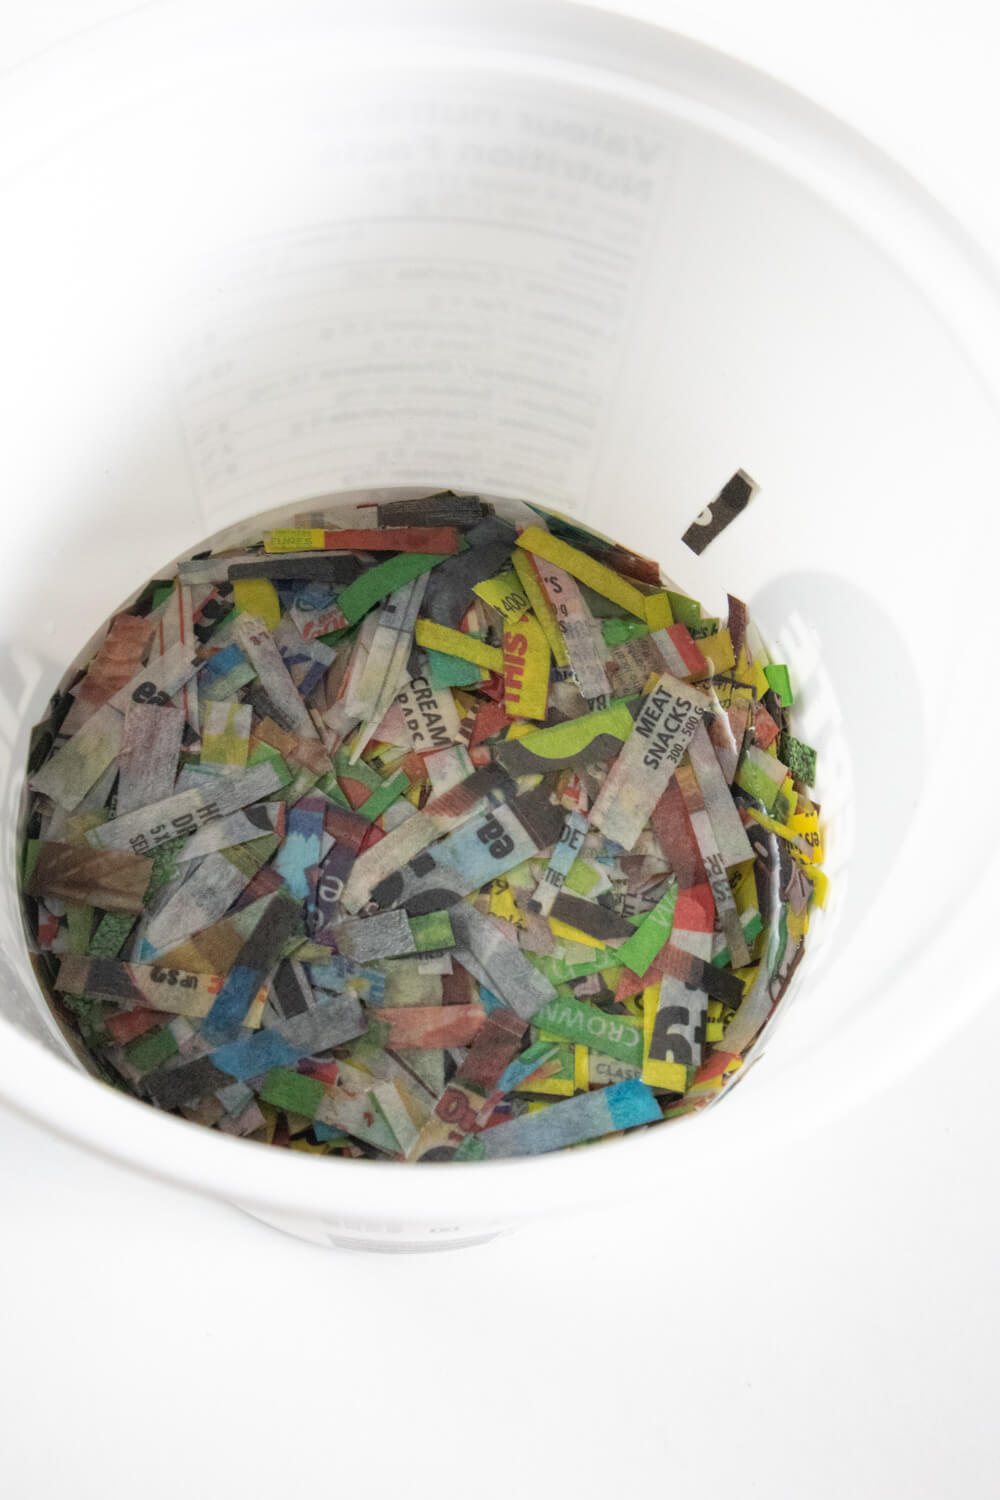 Instructions for Making Paper Mache Clay